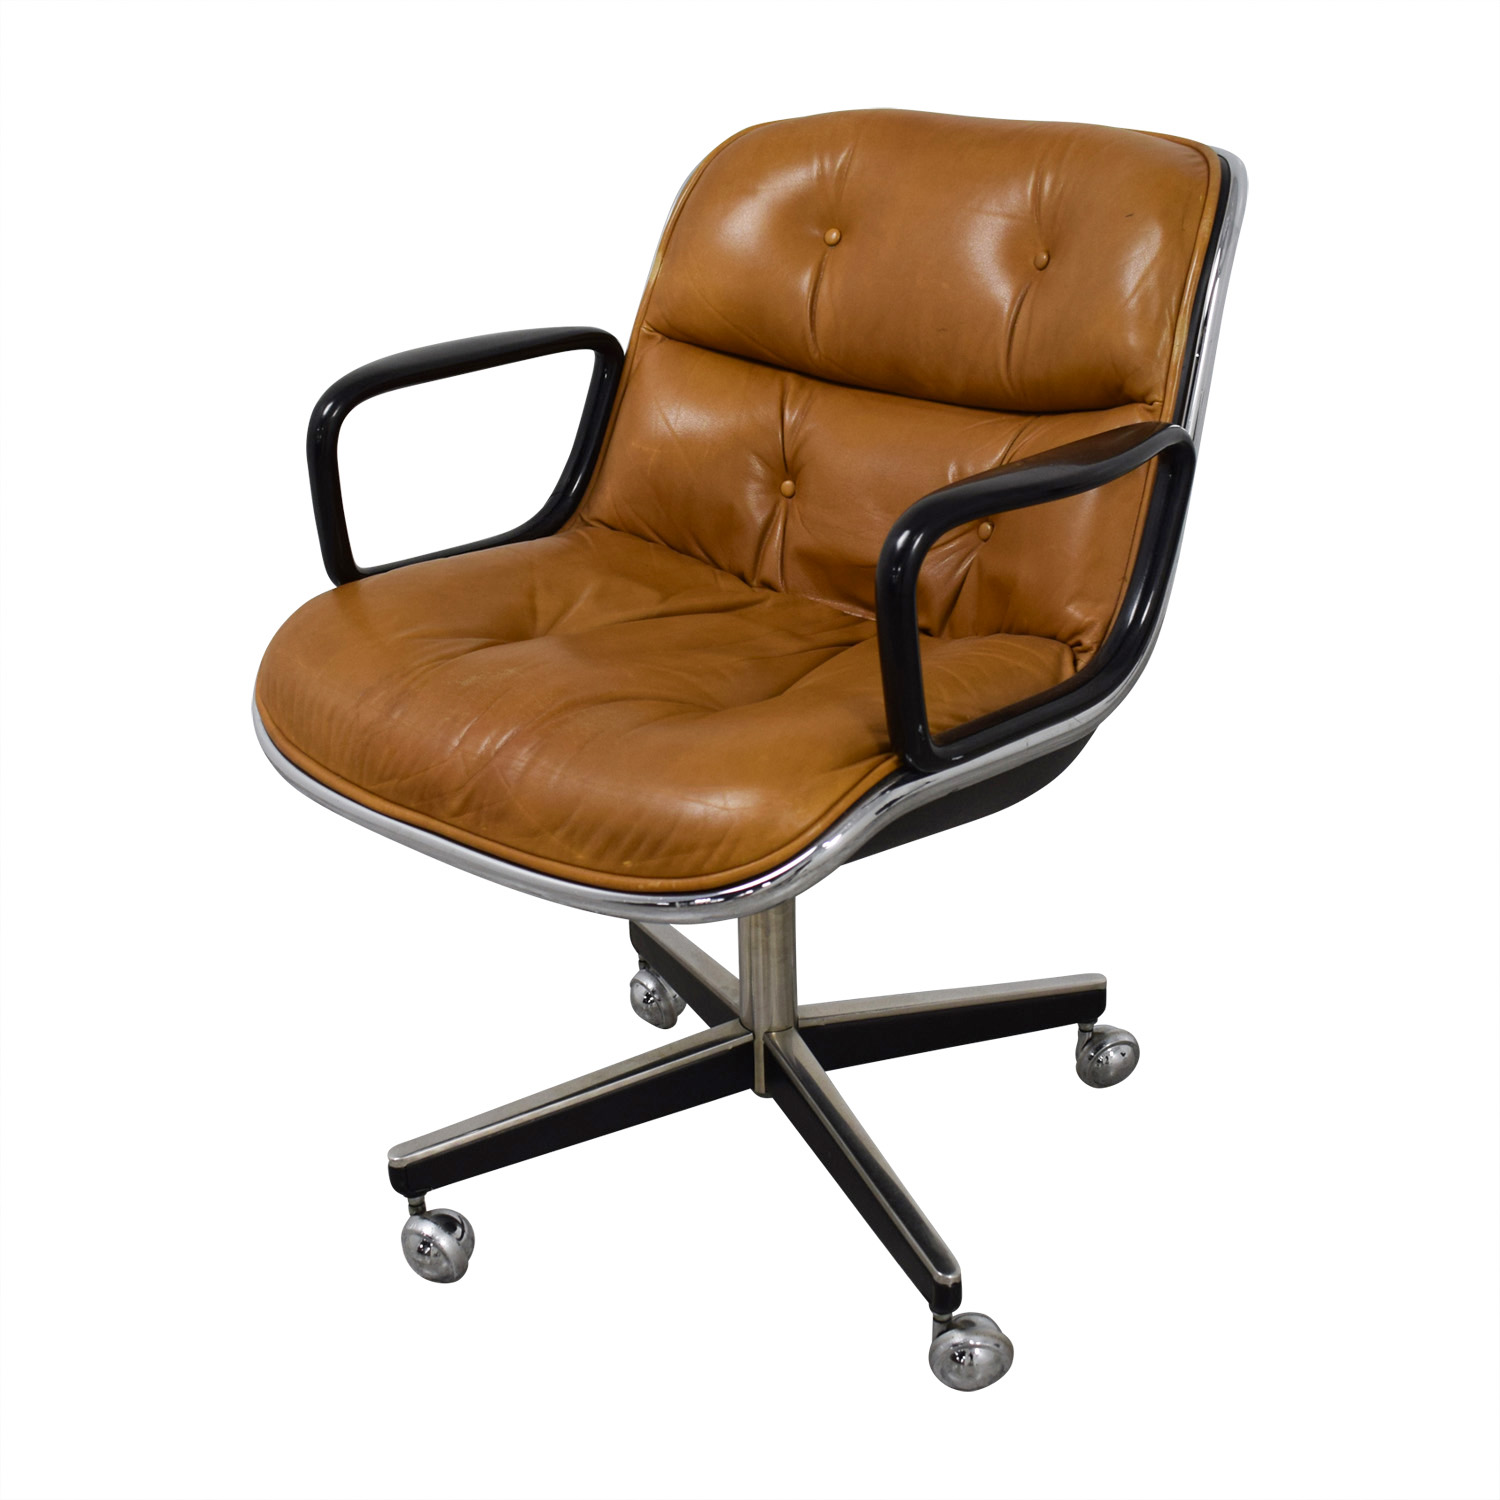 Knoll Pollock Cognac Leather Executive Chairs / Chairs